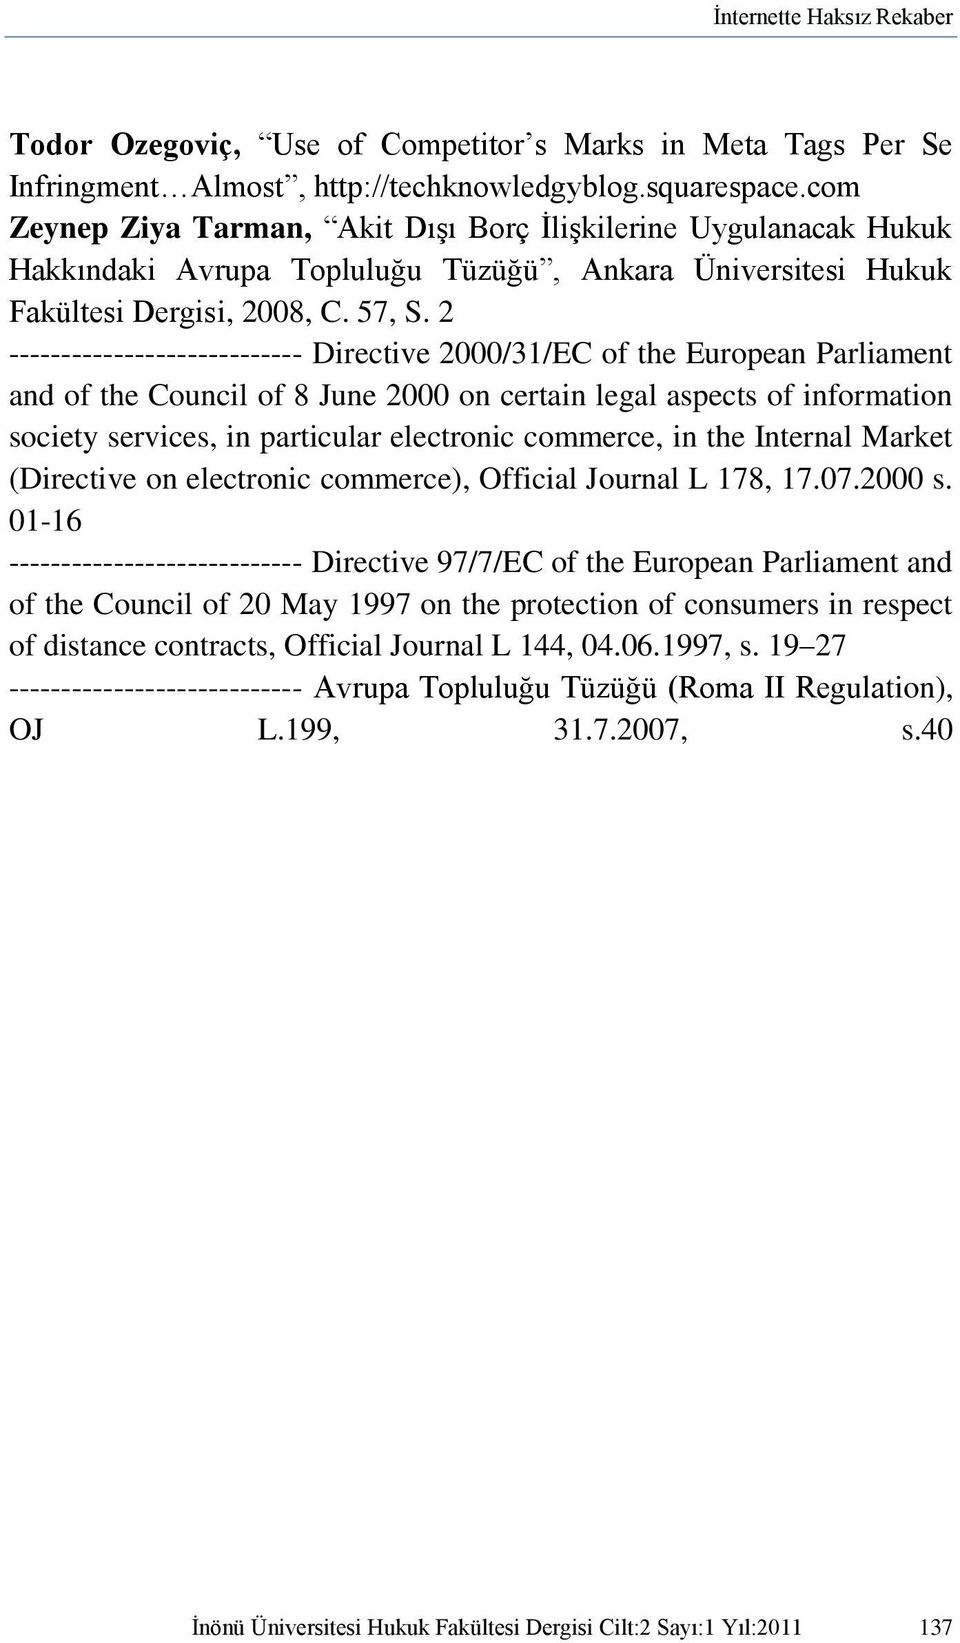 2 ---------------------------- Directive 2000/31/EC of the European Parliament and of the Council of 8 June 2000 on certain legal aspects of information society services, in particular electronic